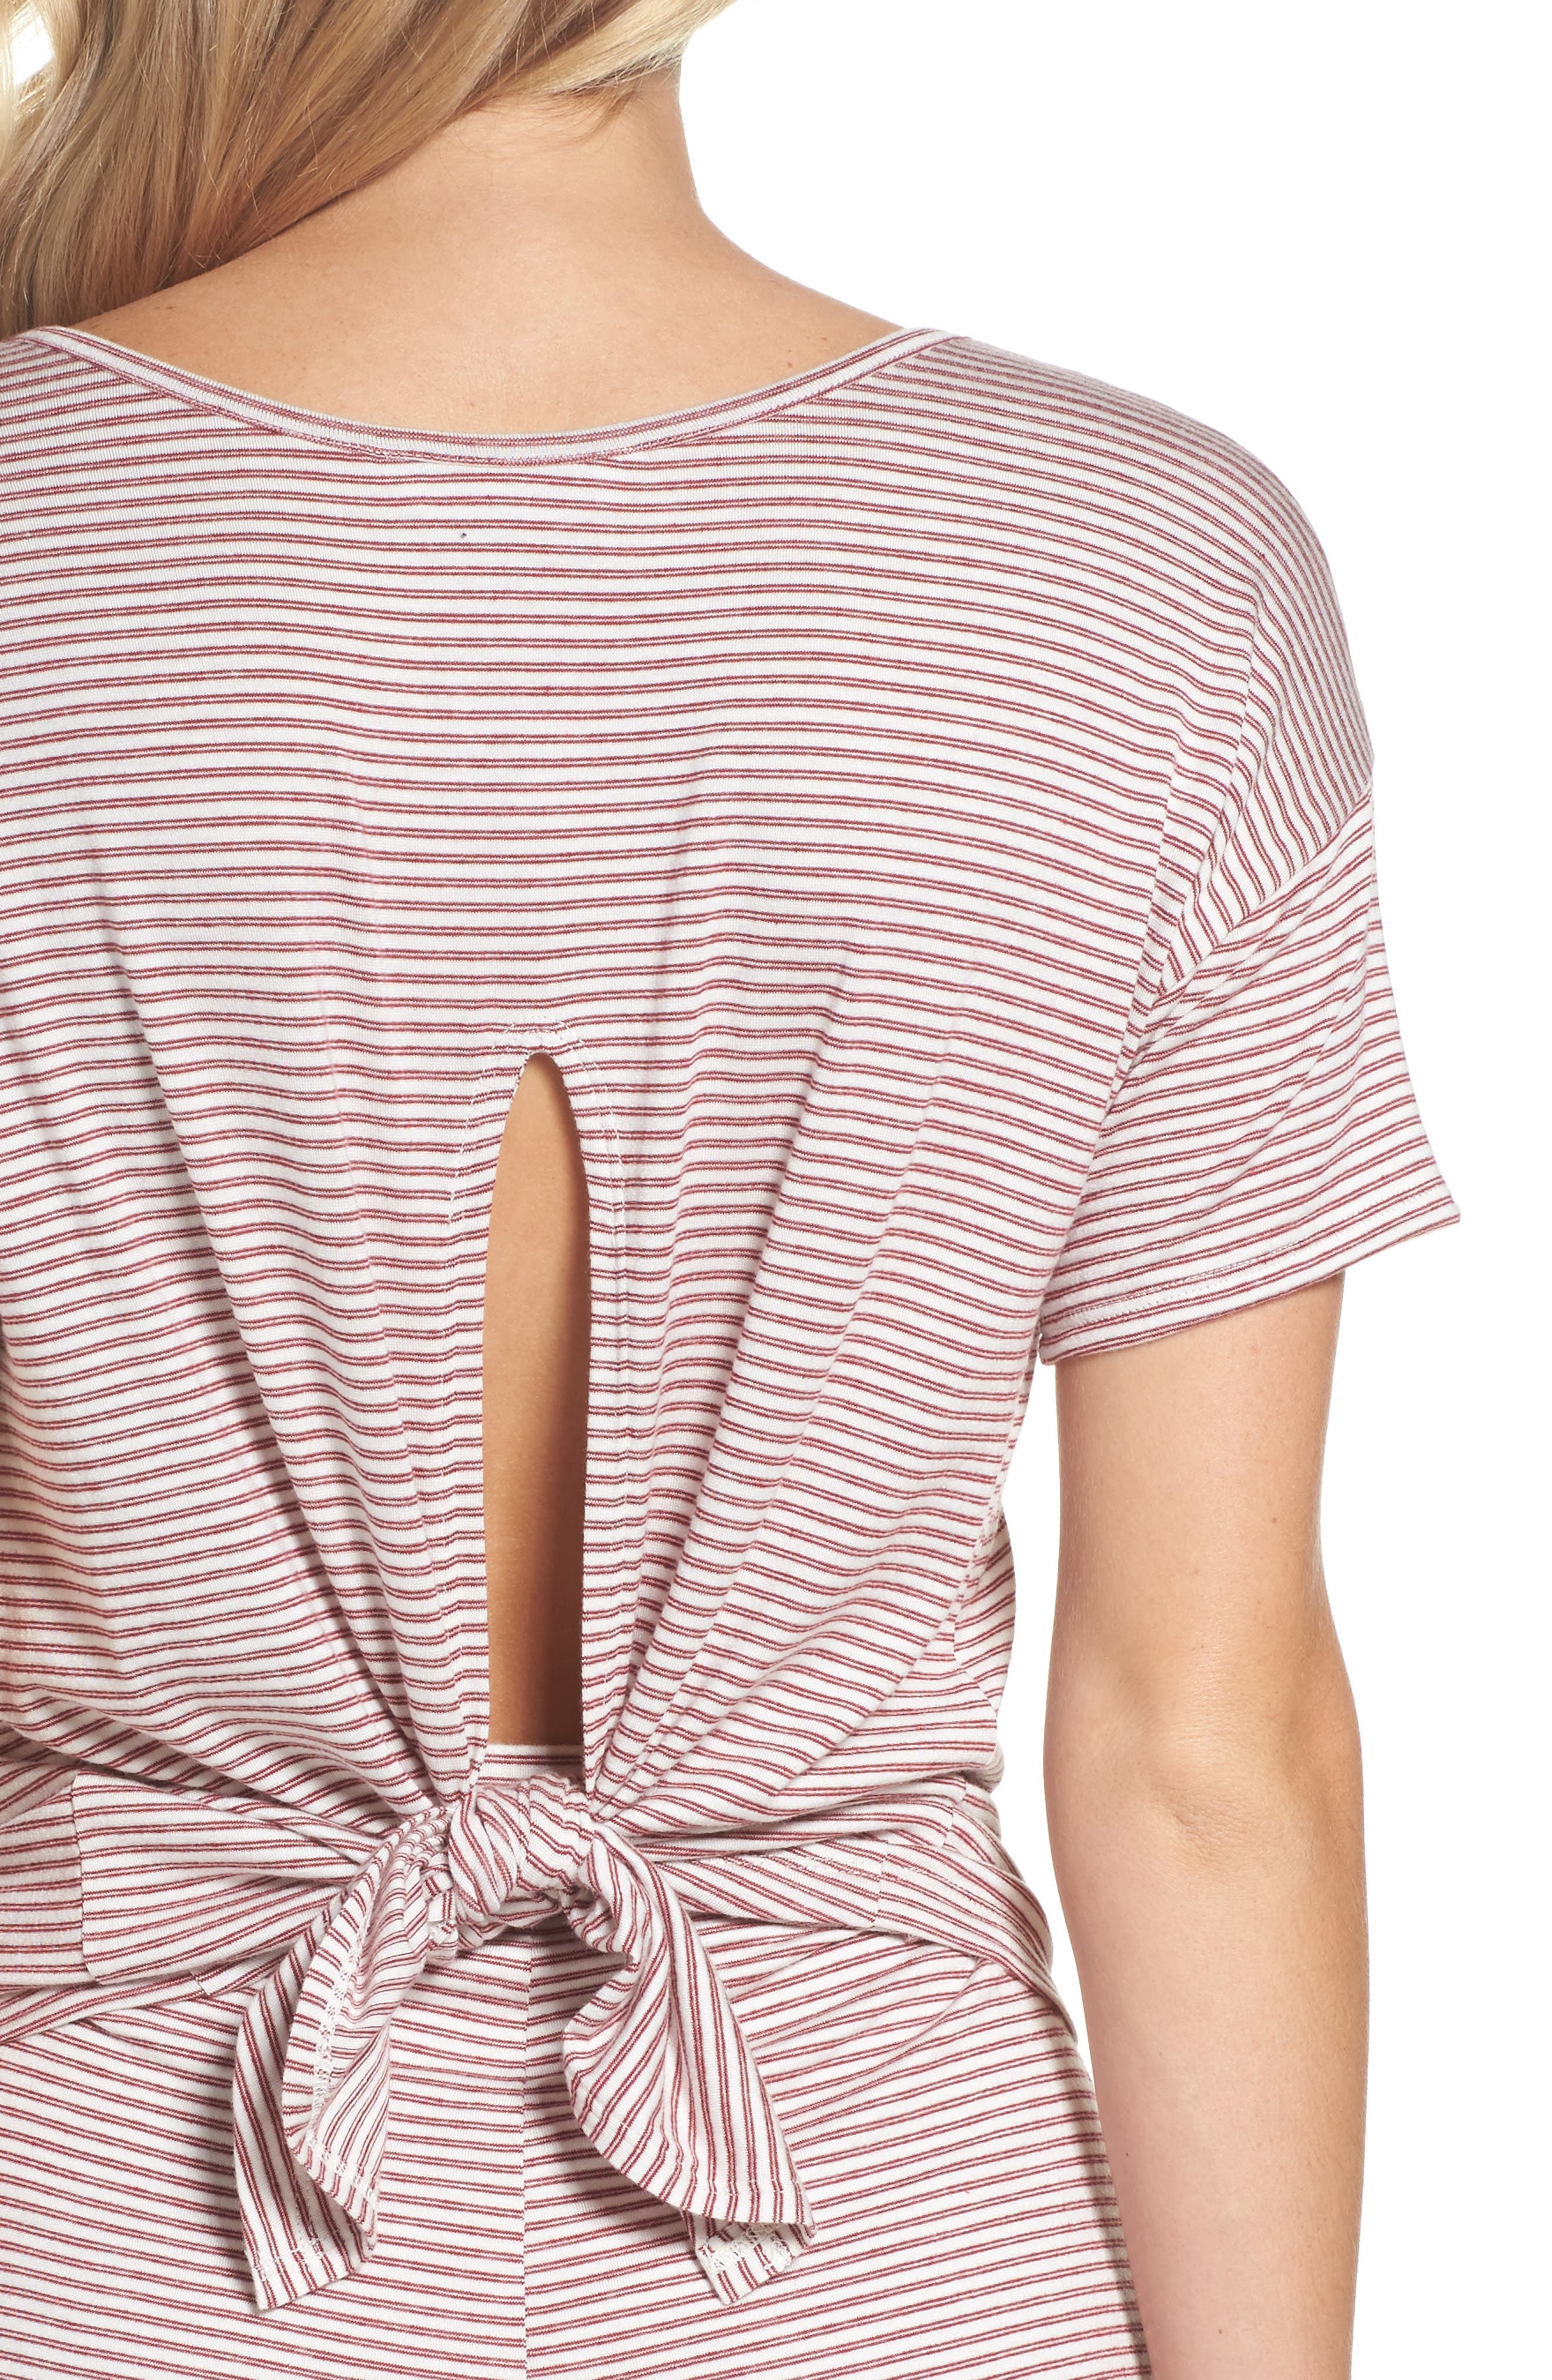 Wilona Back Tie Stripe Tee,                             Alternate thumbnail 5, color,                             Red/ White